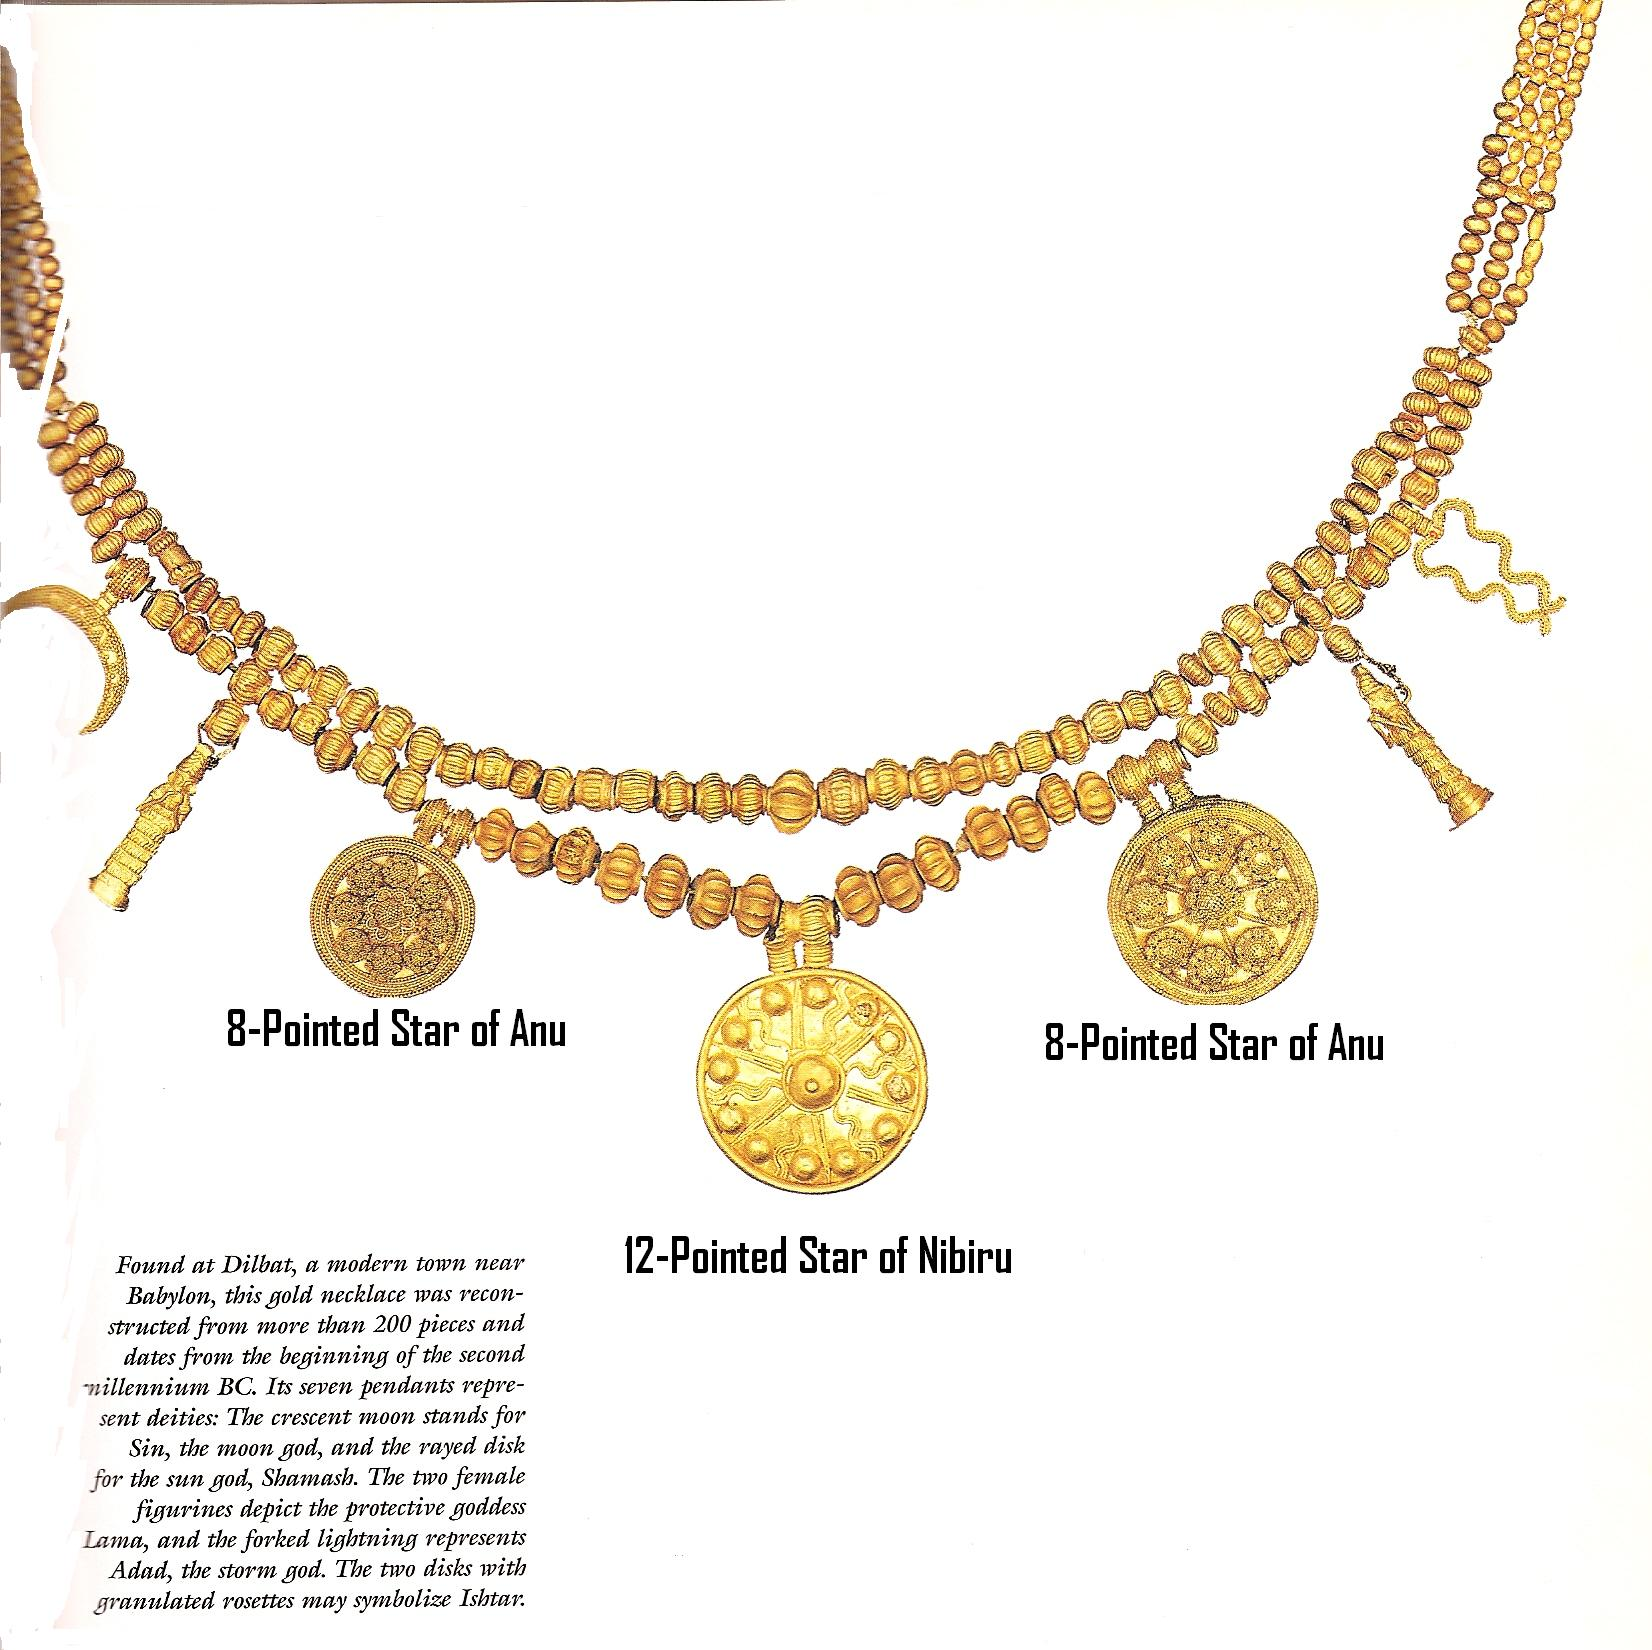 6b - 2,000 B.C. Babylonian artefact, Anu's 8-pointed star symbol & many others - jewelry